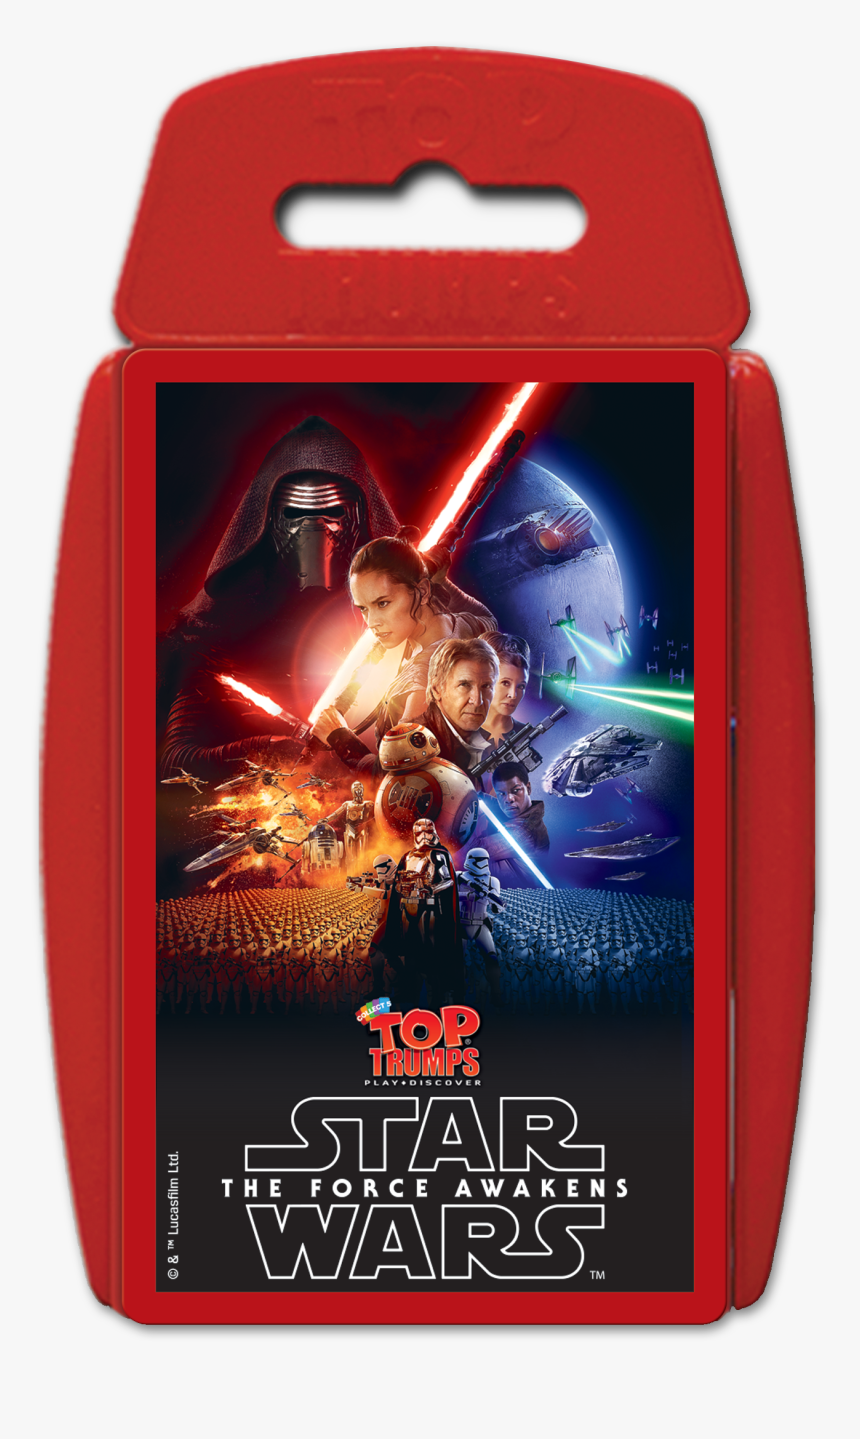 Star Wars The Force Awakens Top Trumps - Star Wars Episode Vii The Force Awakens 2015 Movie, HD Png Download, Free Download